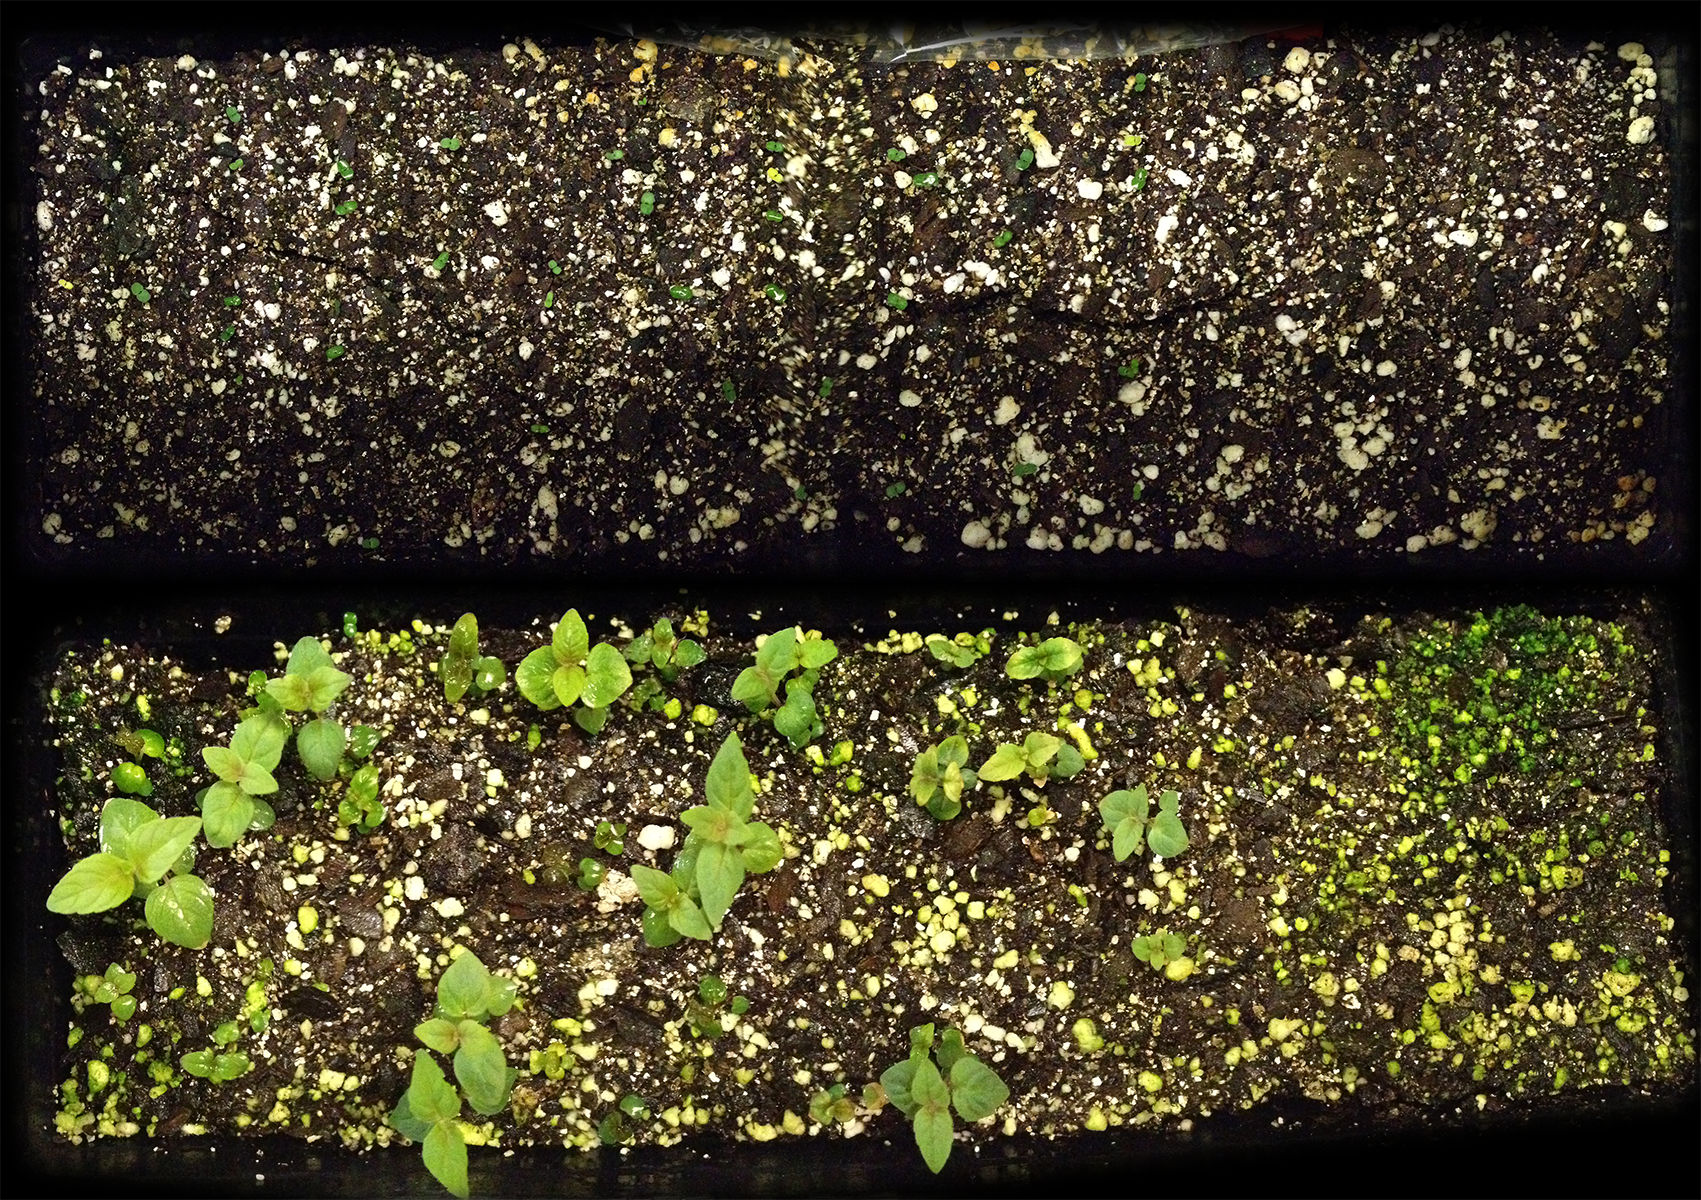 Monarda bradburiana  under no stratification treatment. Top shows first day of germination; bottom image shows growth after 30 days in the growth chamber.